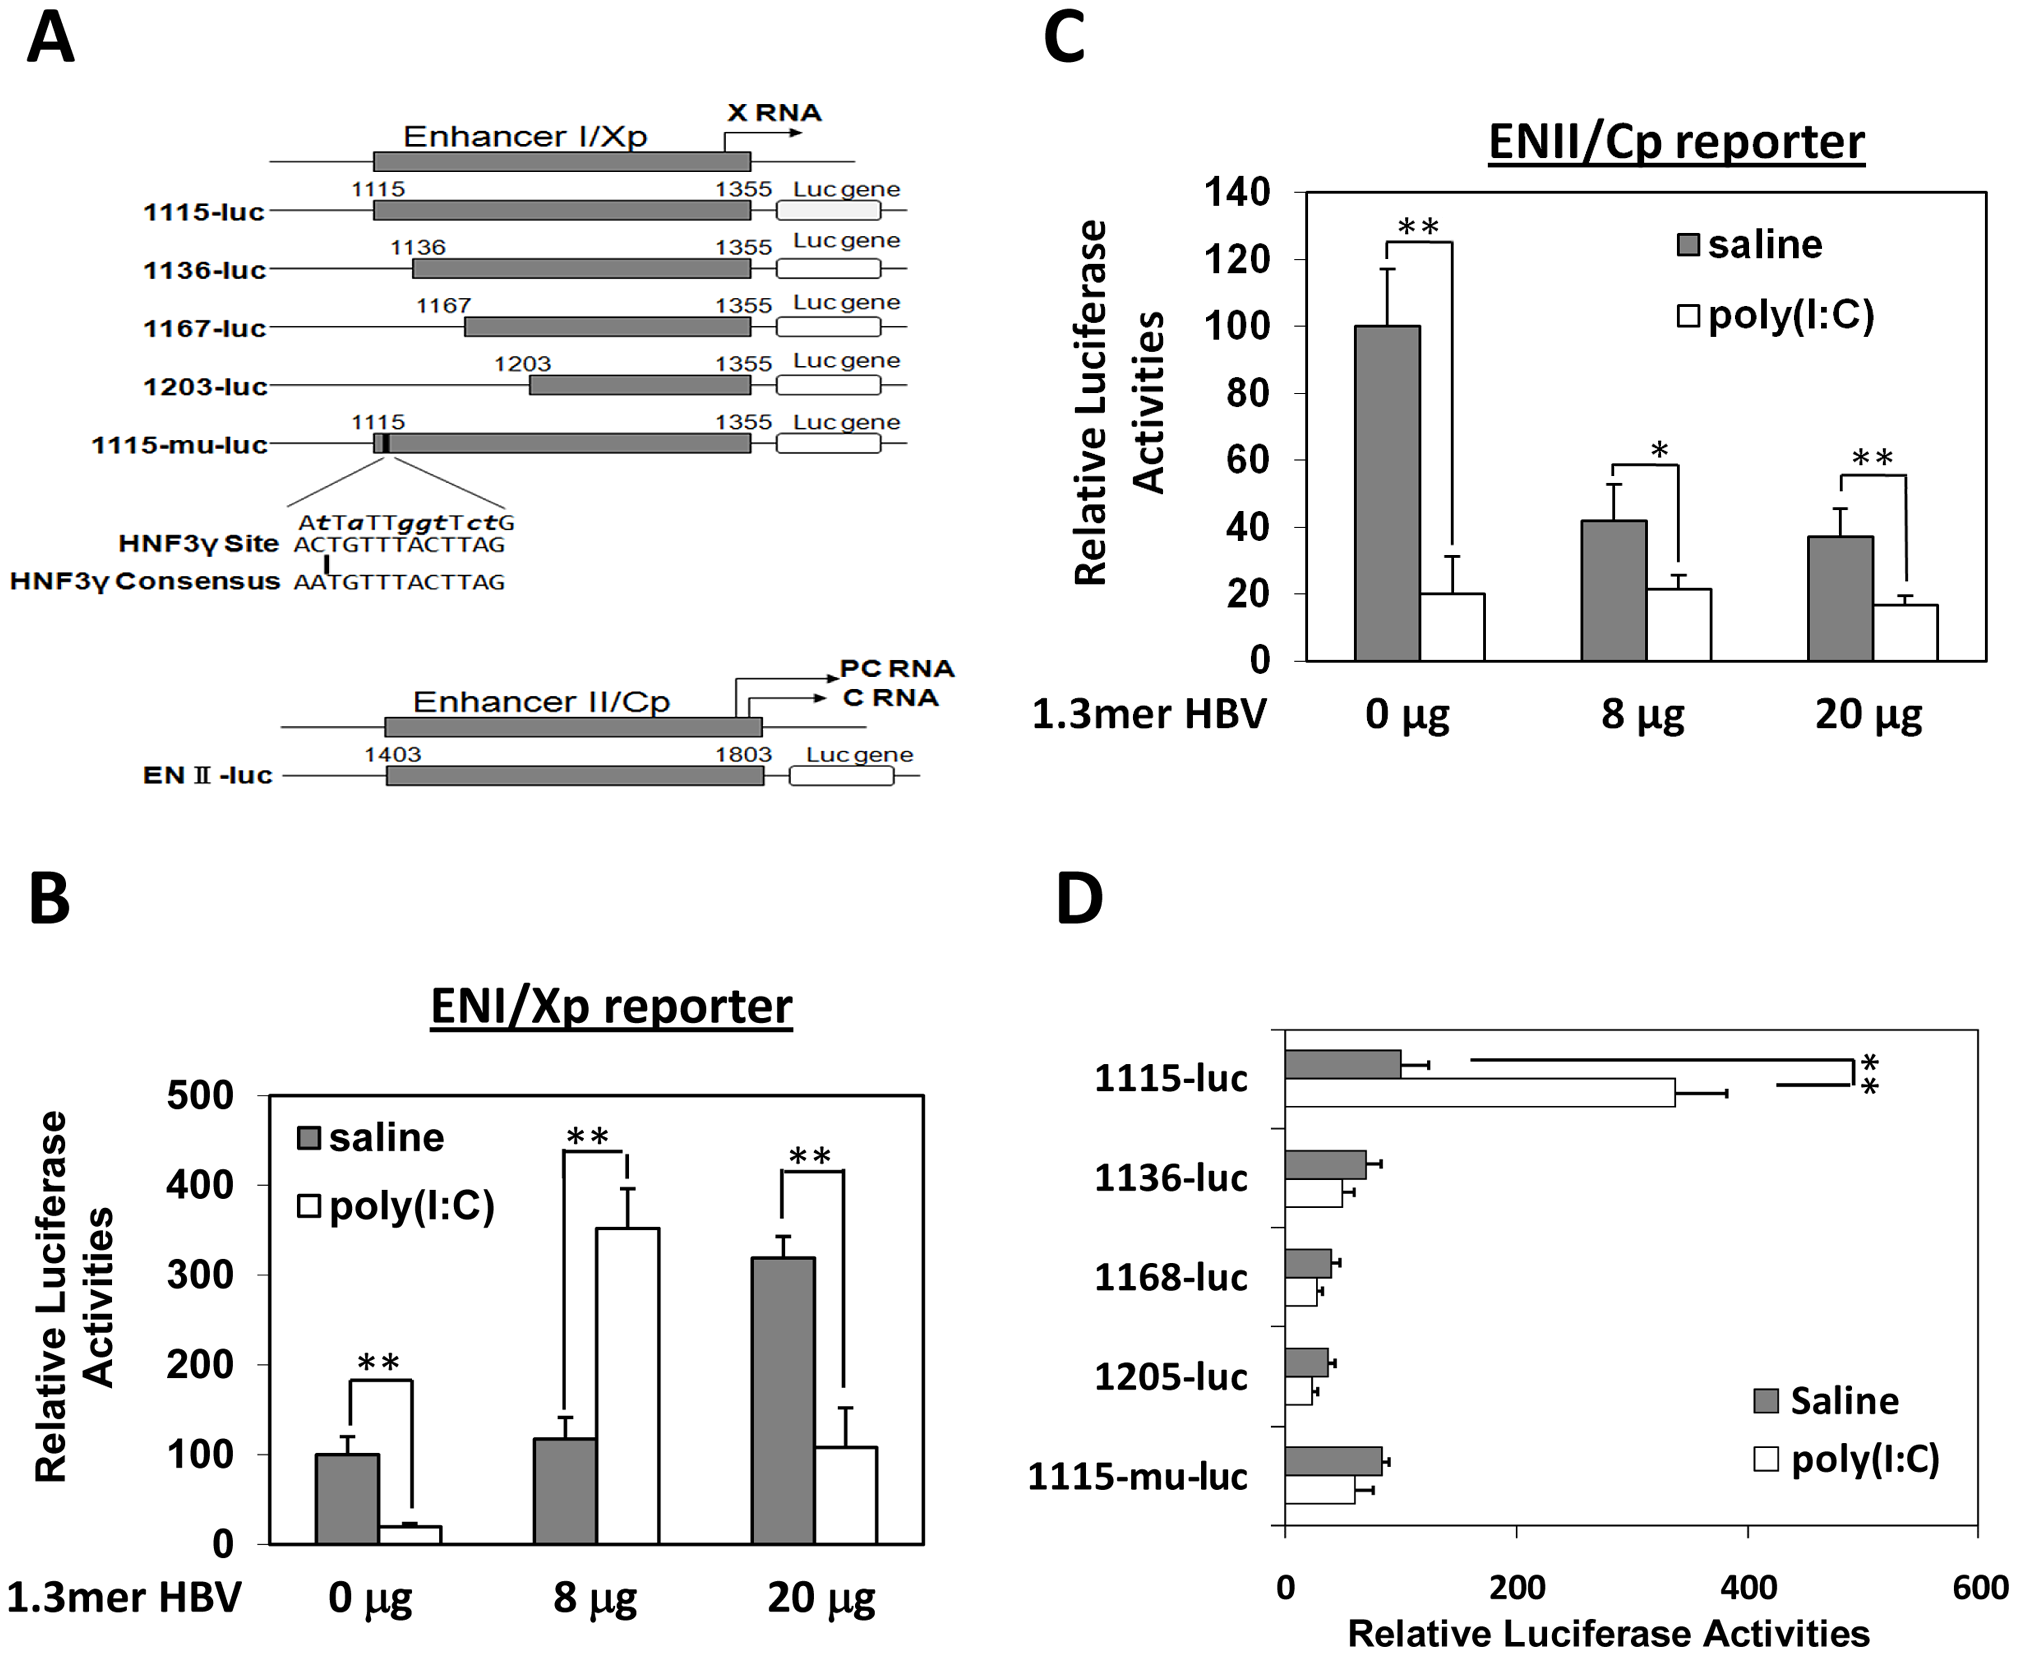 Effects of poly(I∶C) on HBV ENI/Xp and ENII/Cp in mice.